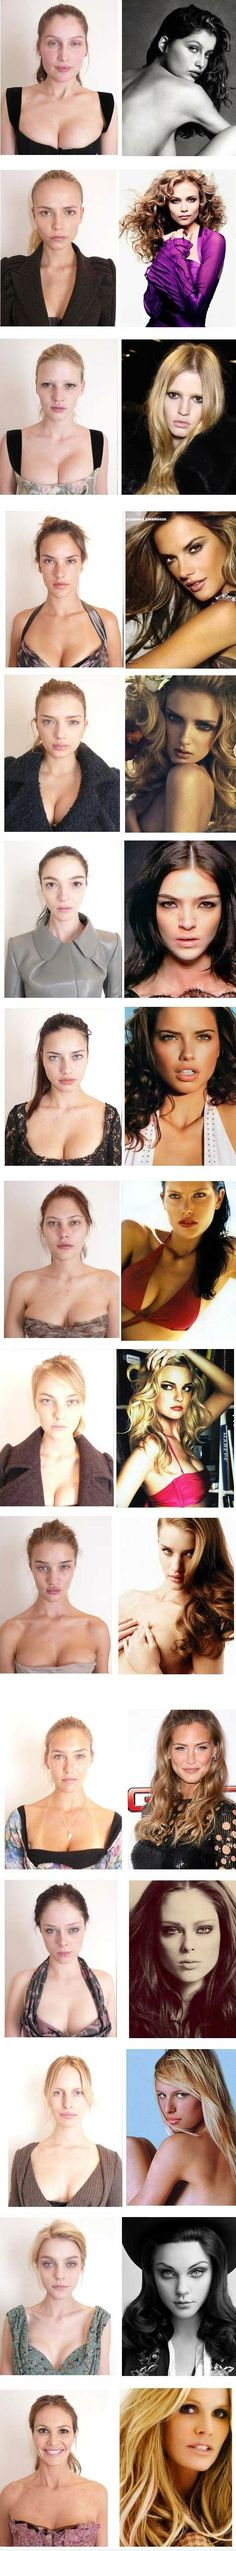 Models without make-up. Girls need to realize that we aren't spray-painted and we do not have hair & make-up stylists every day! NOBODY can look like a VS model, including the models themselves!